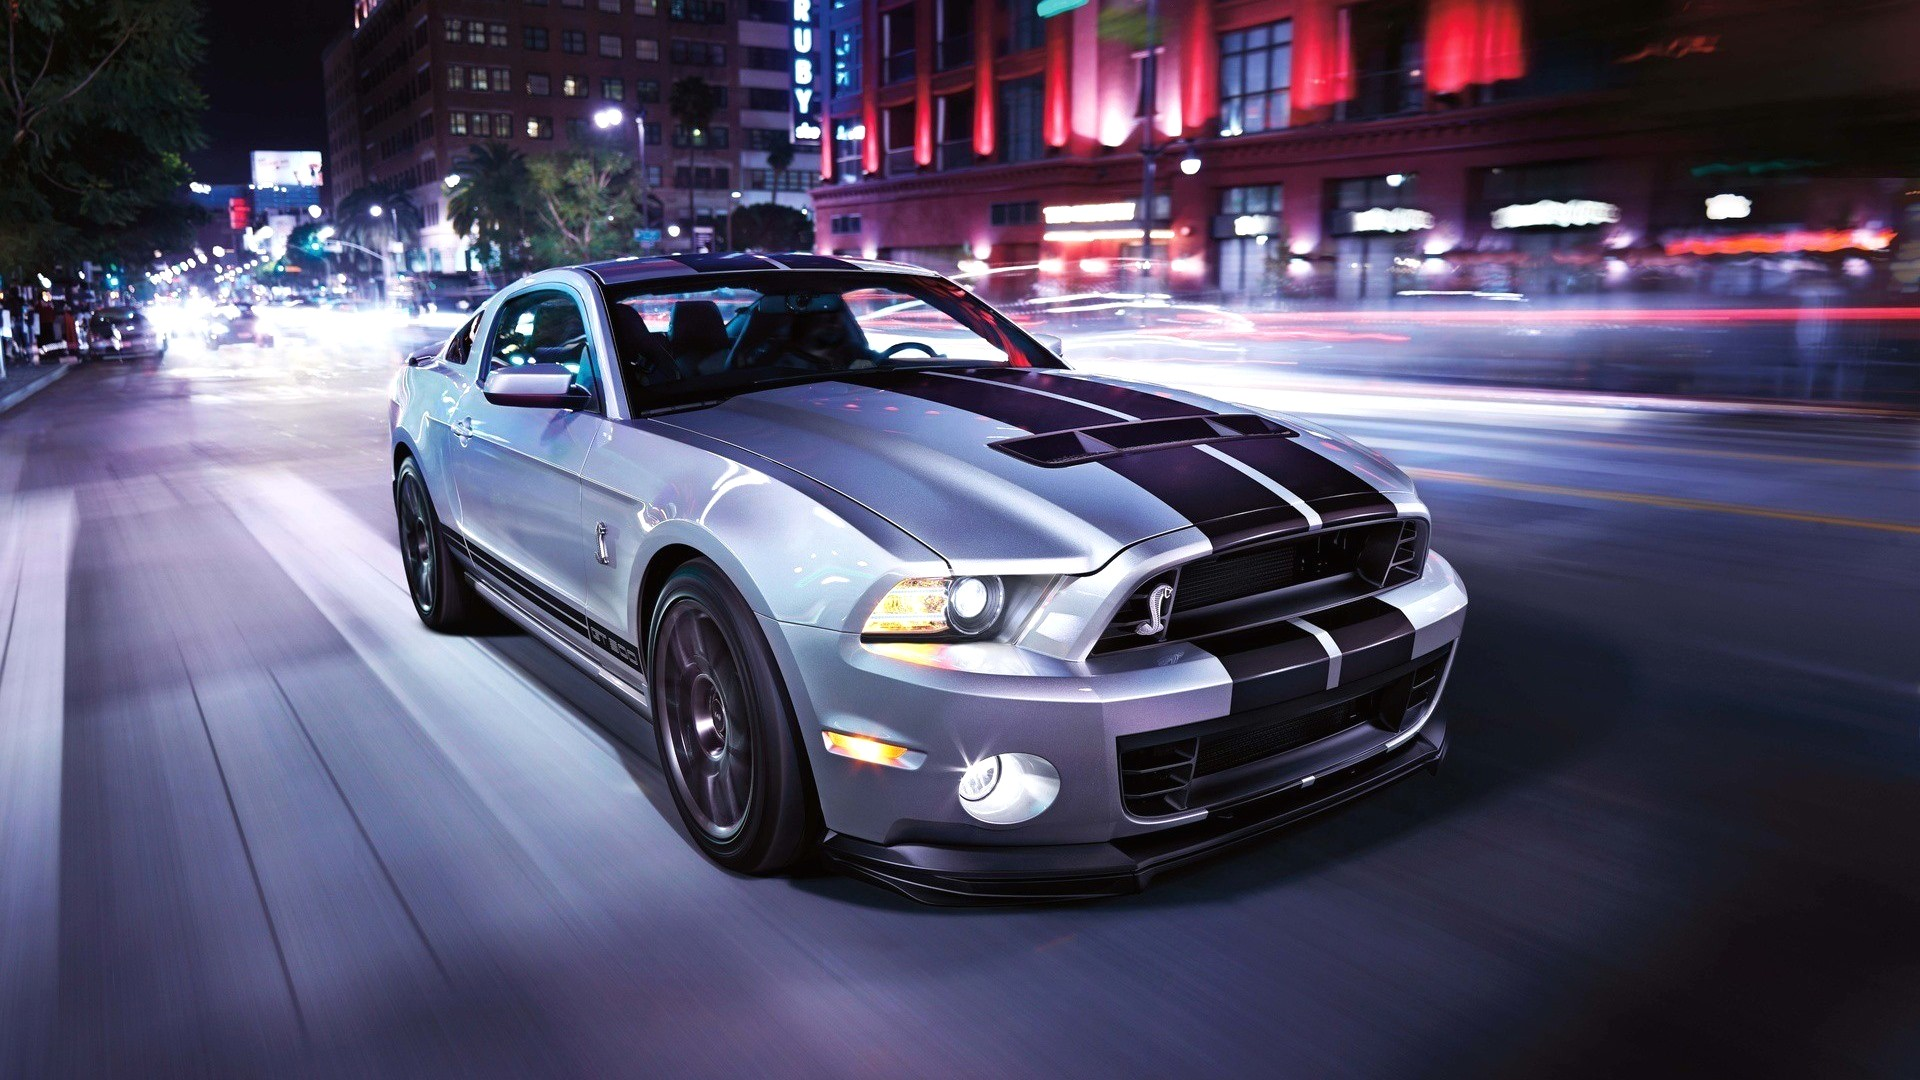 in The World 2015 New Pictures Best Car In The World Images Wallpaper 1920x1080